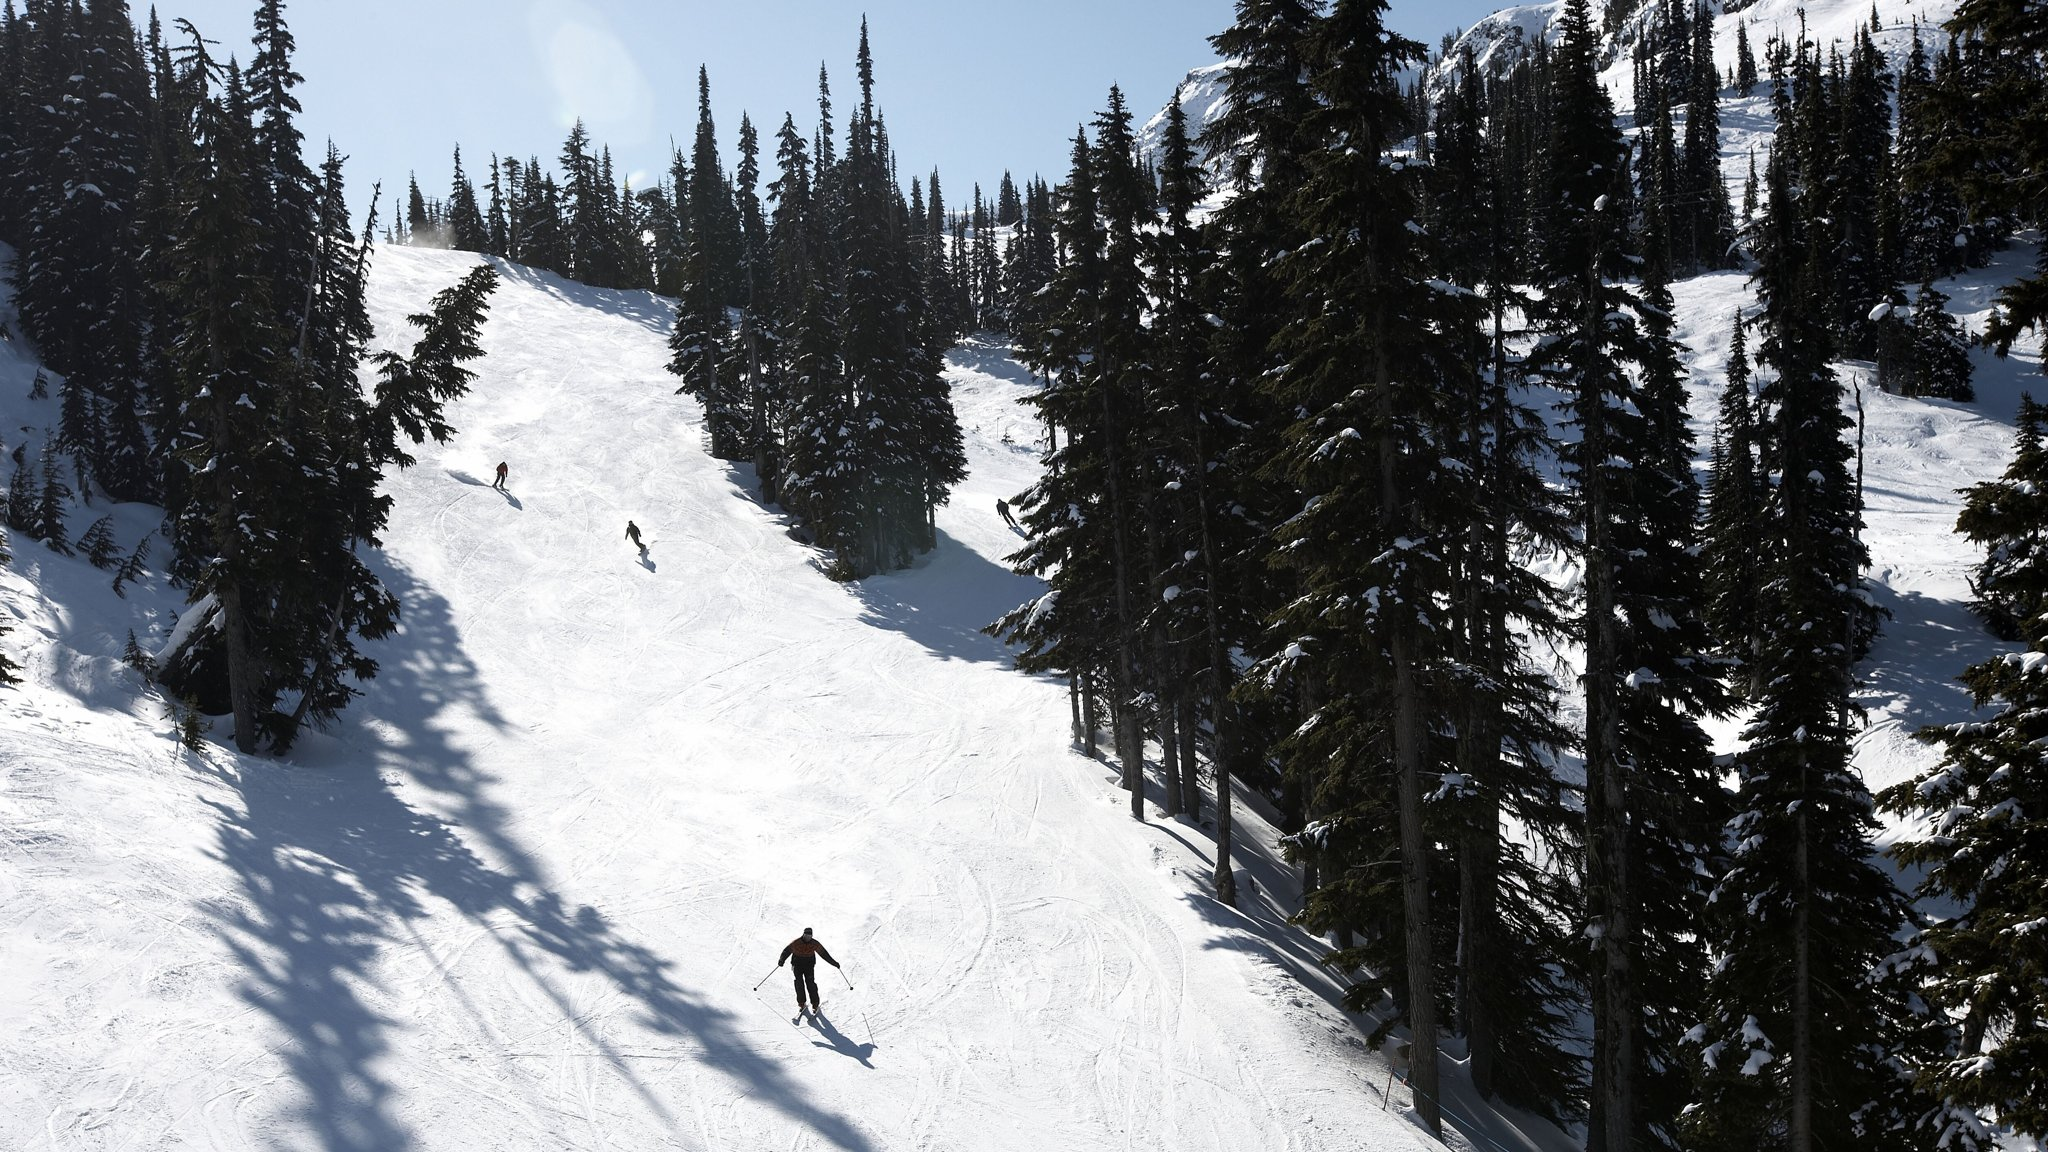 The ski resort of Whistler is about 90 minutes' drive from Vancouver